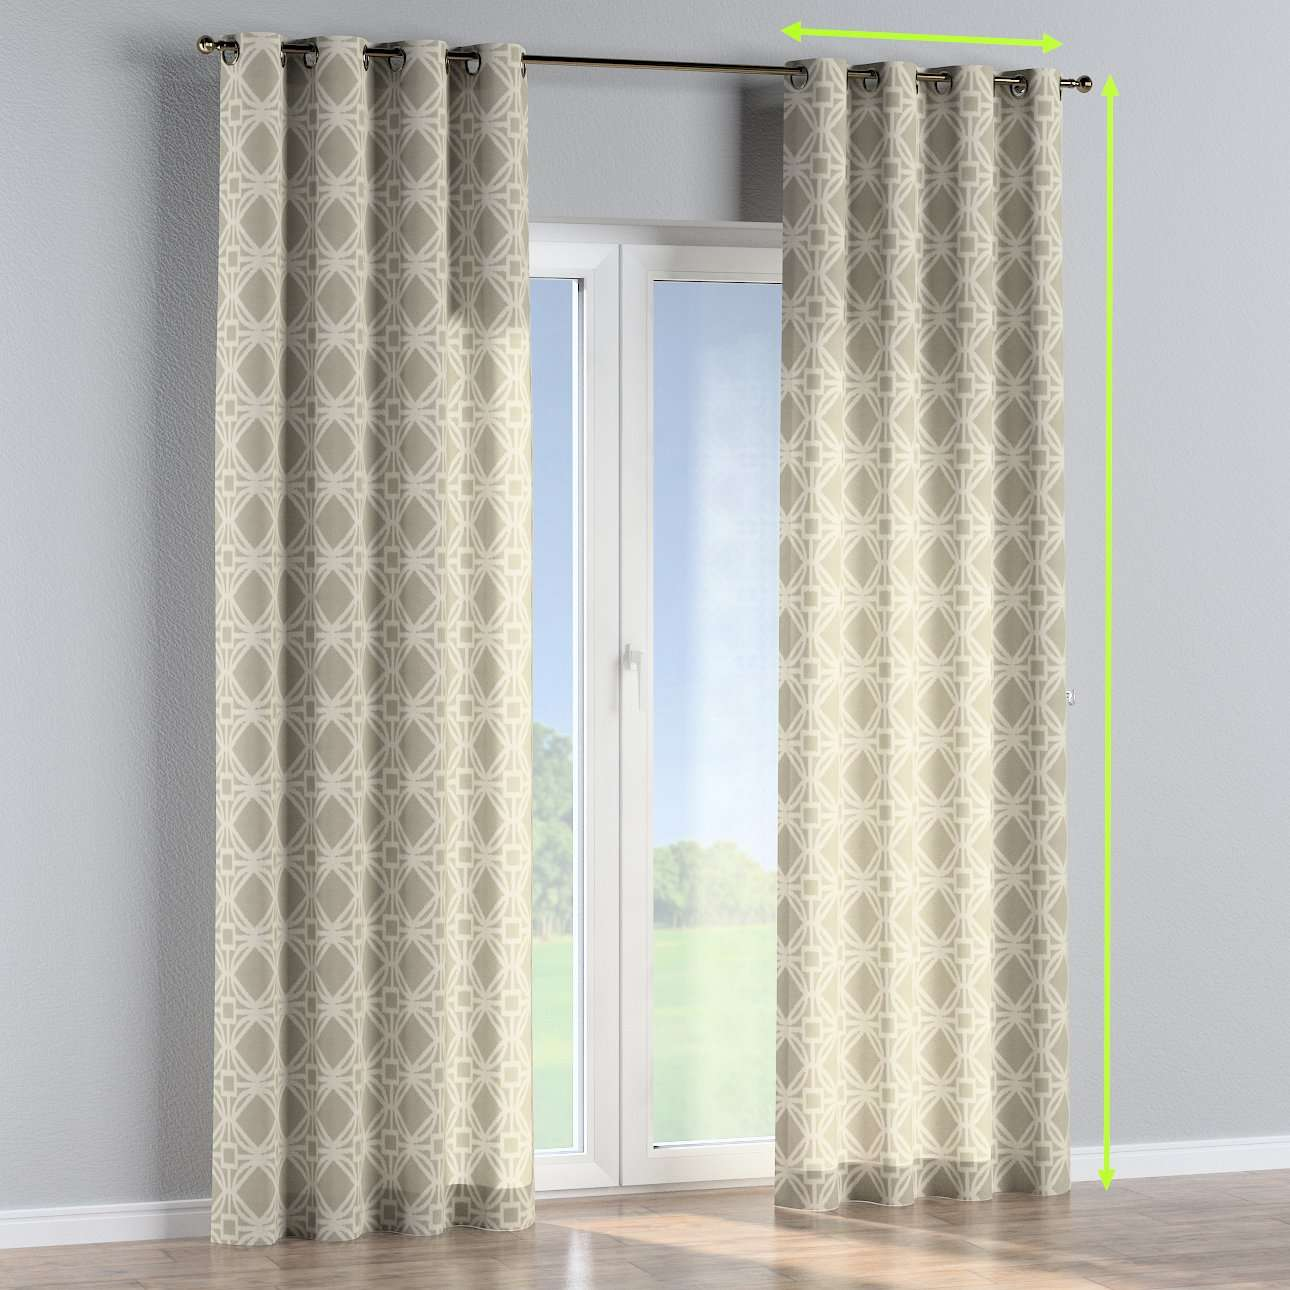 Eyelet curtains in collection Comic Book & Geo Prints, fabric: 141-56